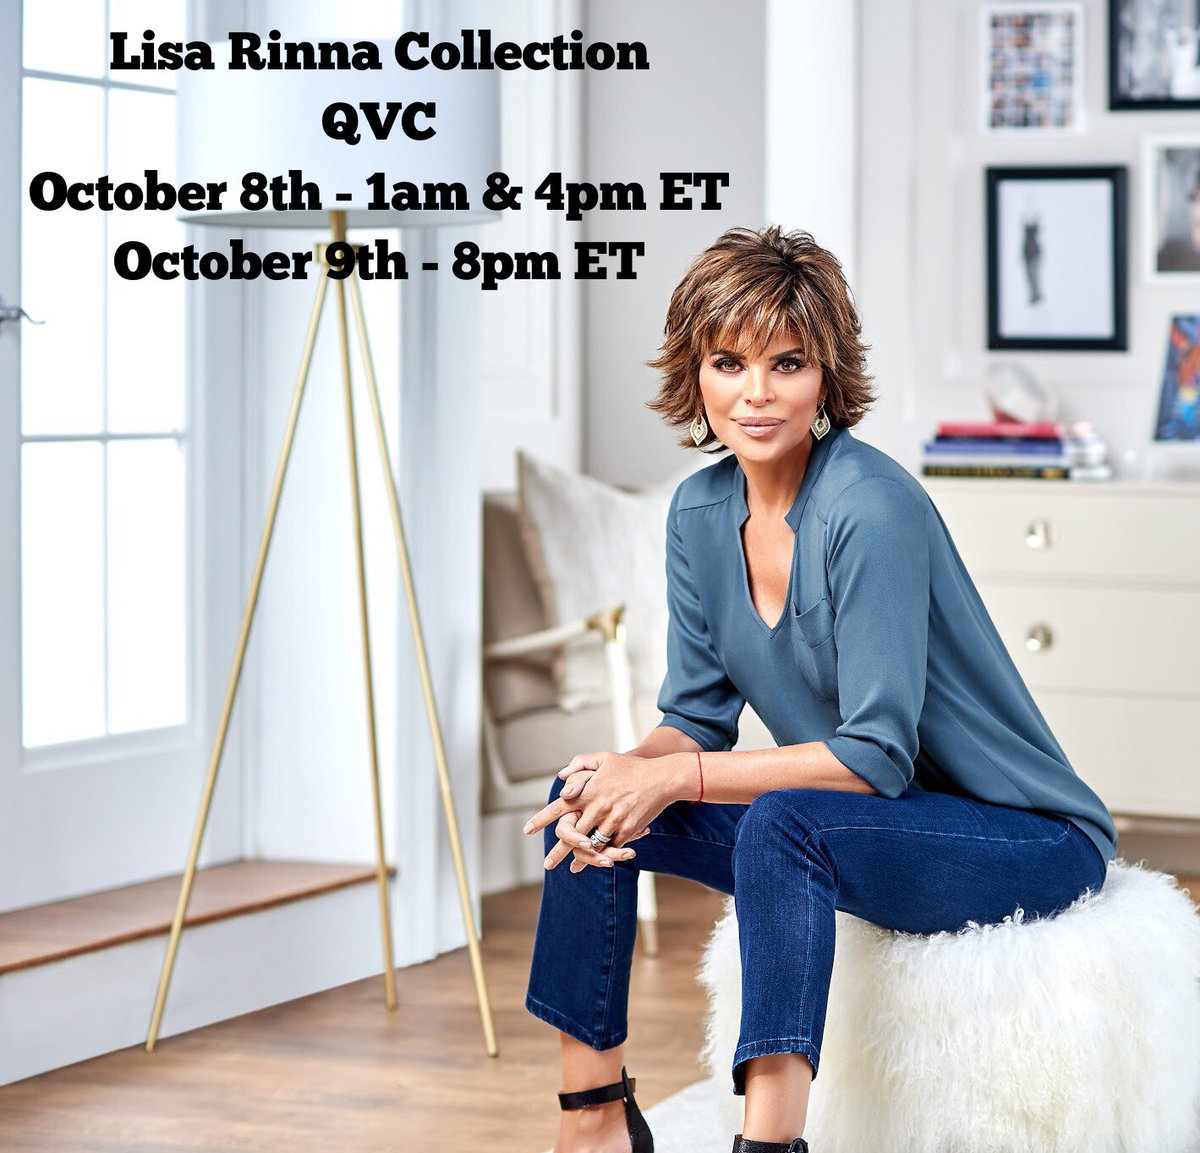 Back to @QVC this Monday and Tuesday with my #LisaRinnaCollection! ???????????????? https://t.co/X1GVAoqtl0